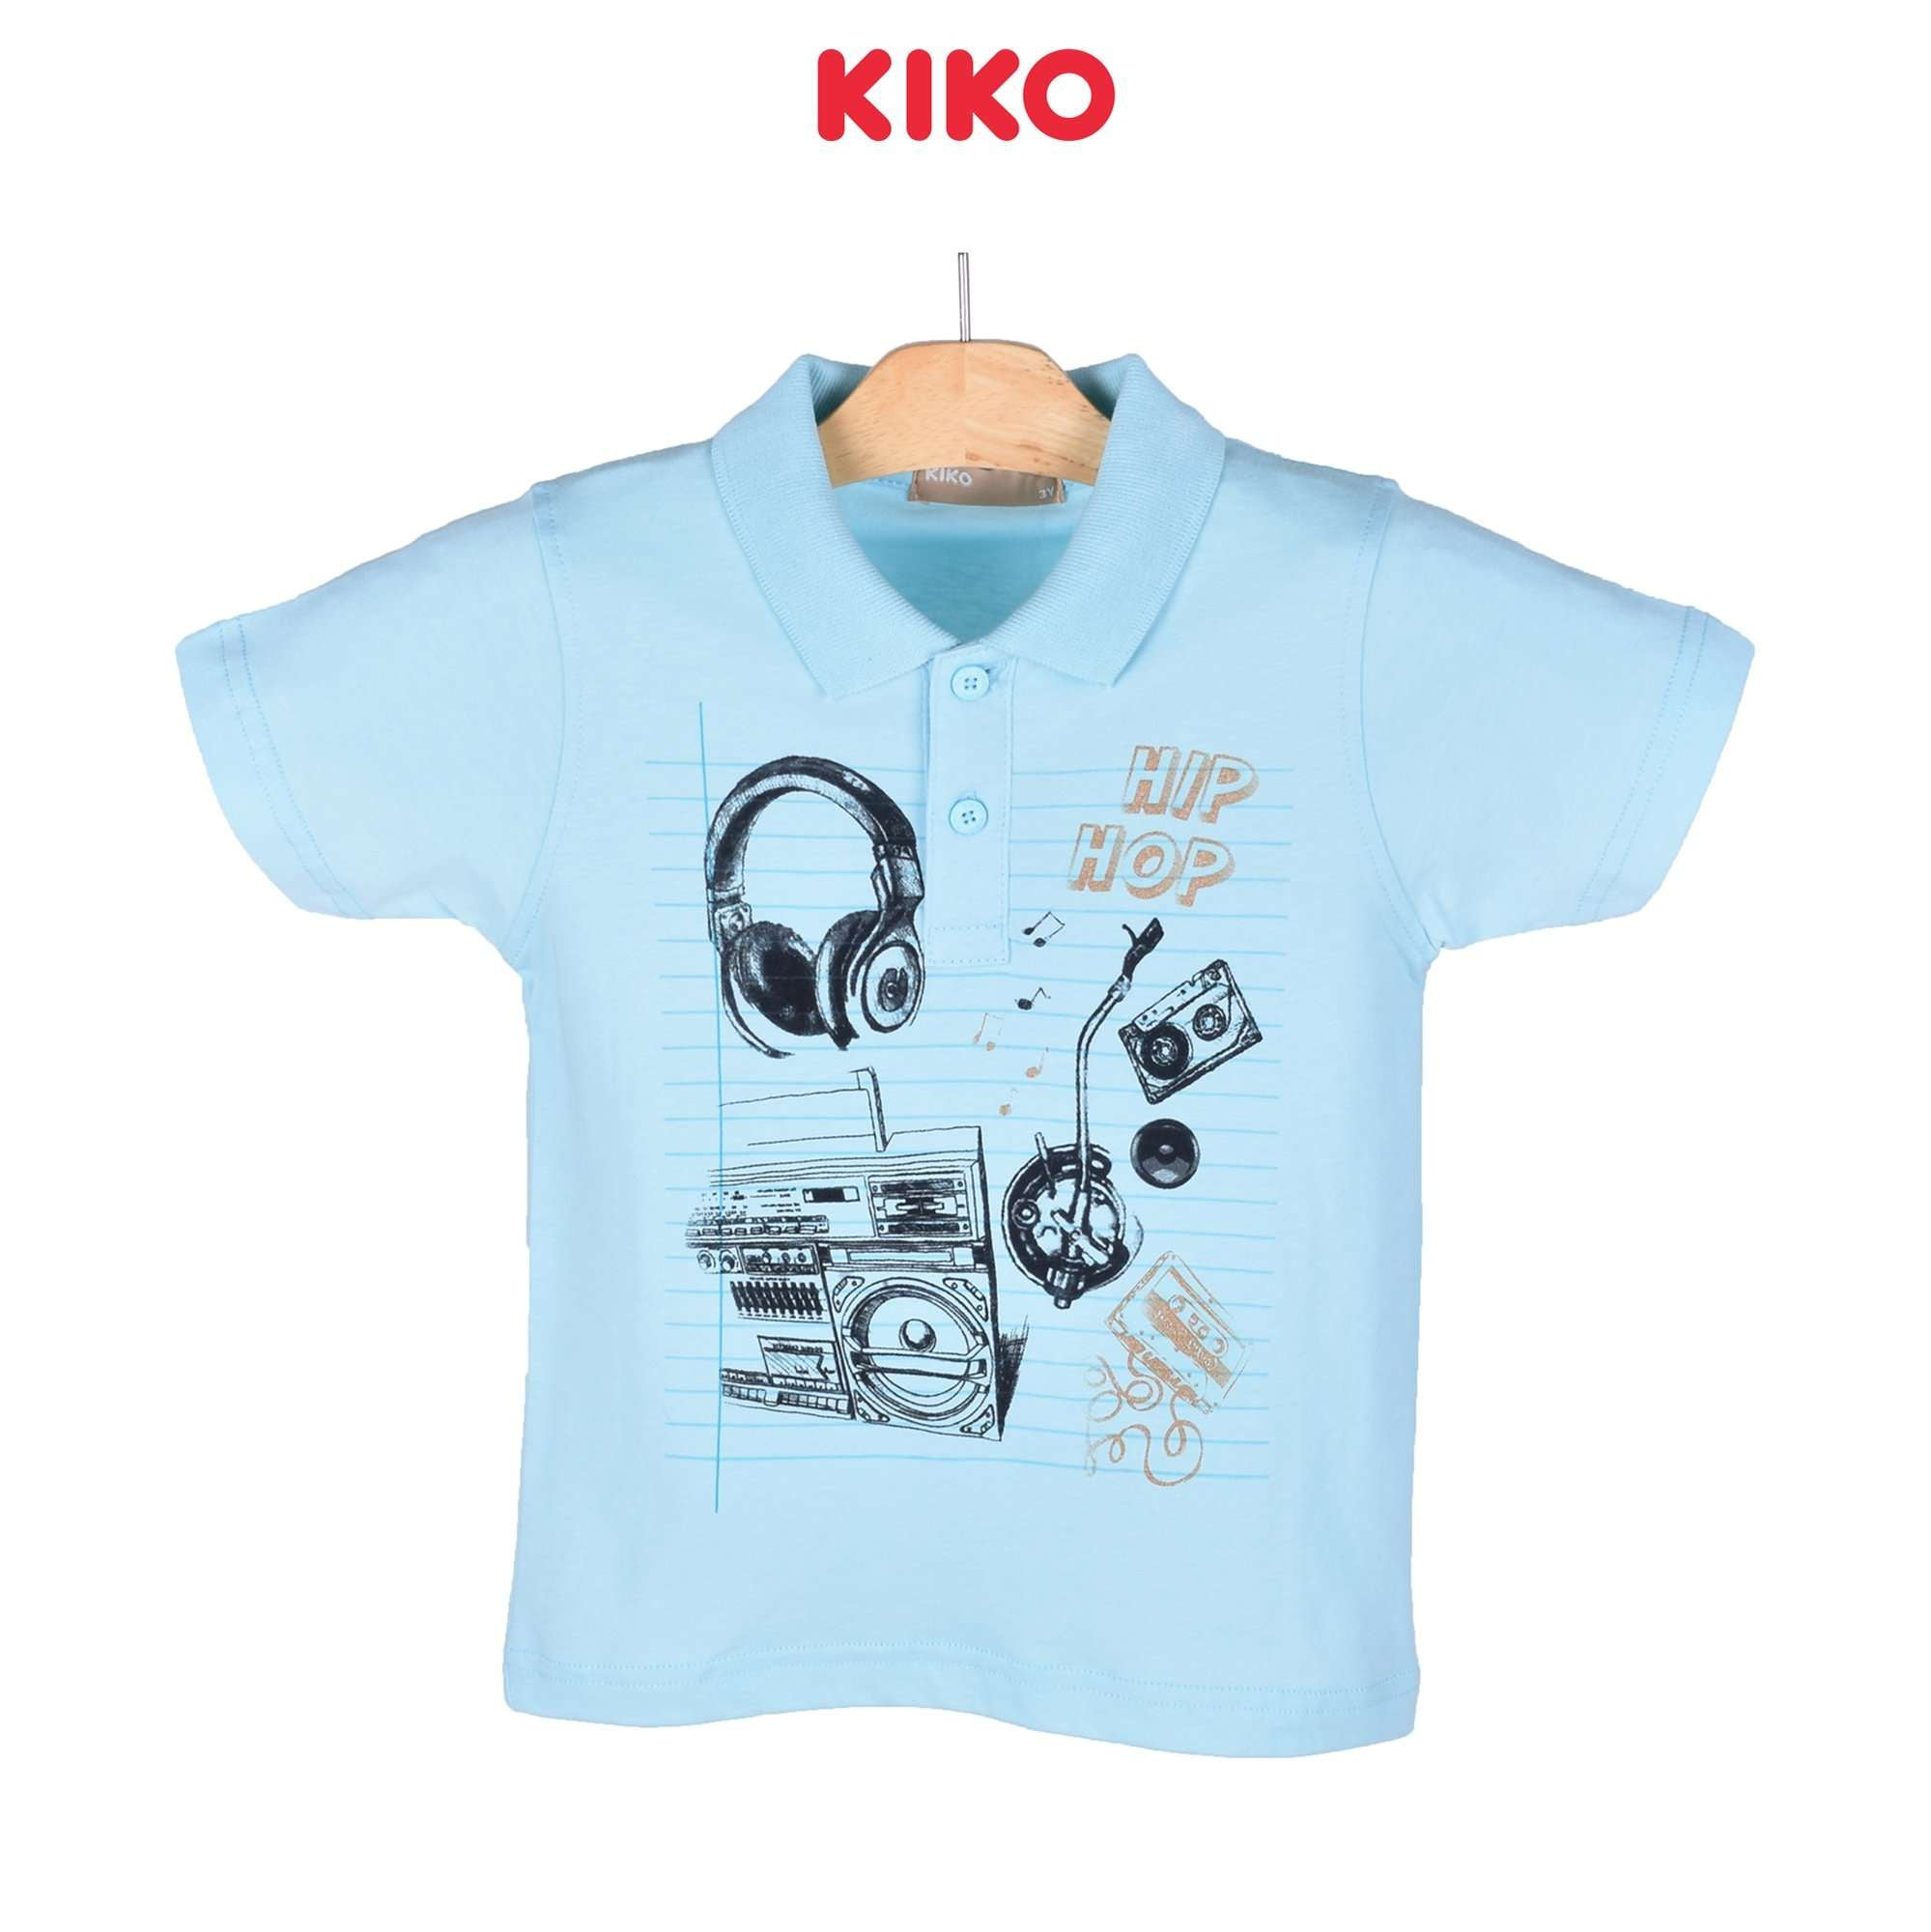 KIKO Boy Short Sleeve Collar Tee 130086-121 : Buy KIKO online at CMG.MY